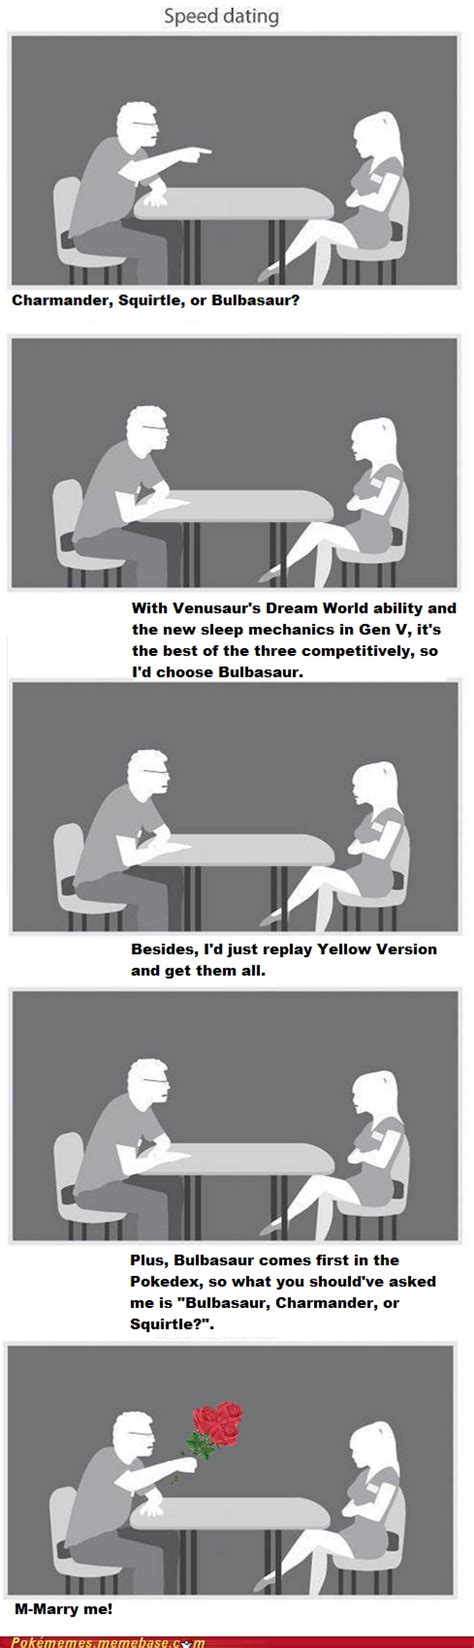 17 best images about geek speed dating meme on pinterest